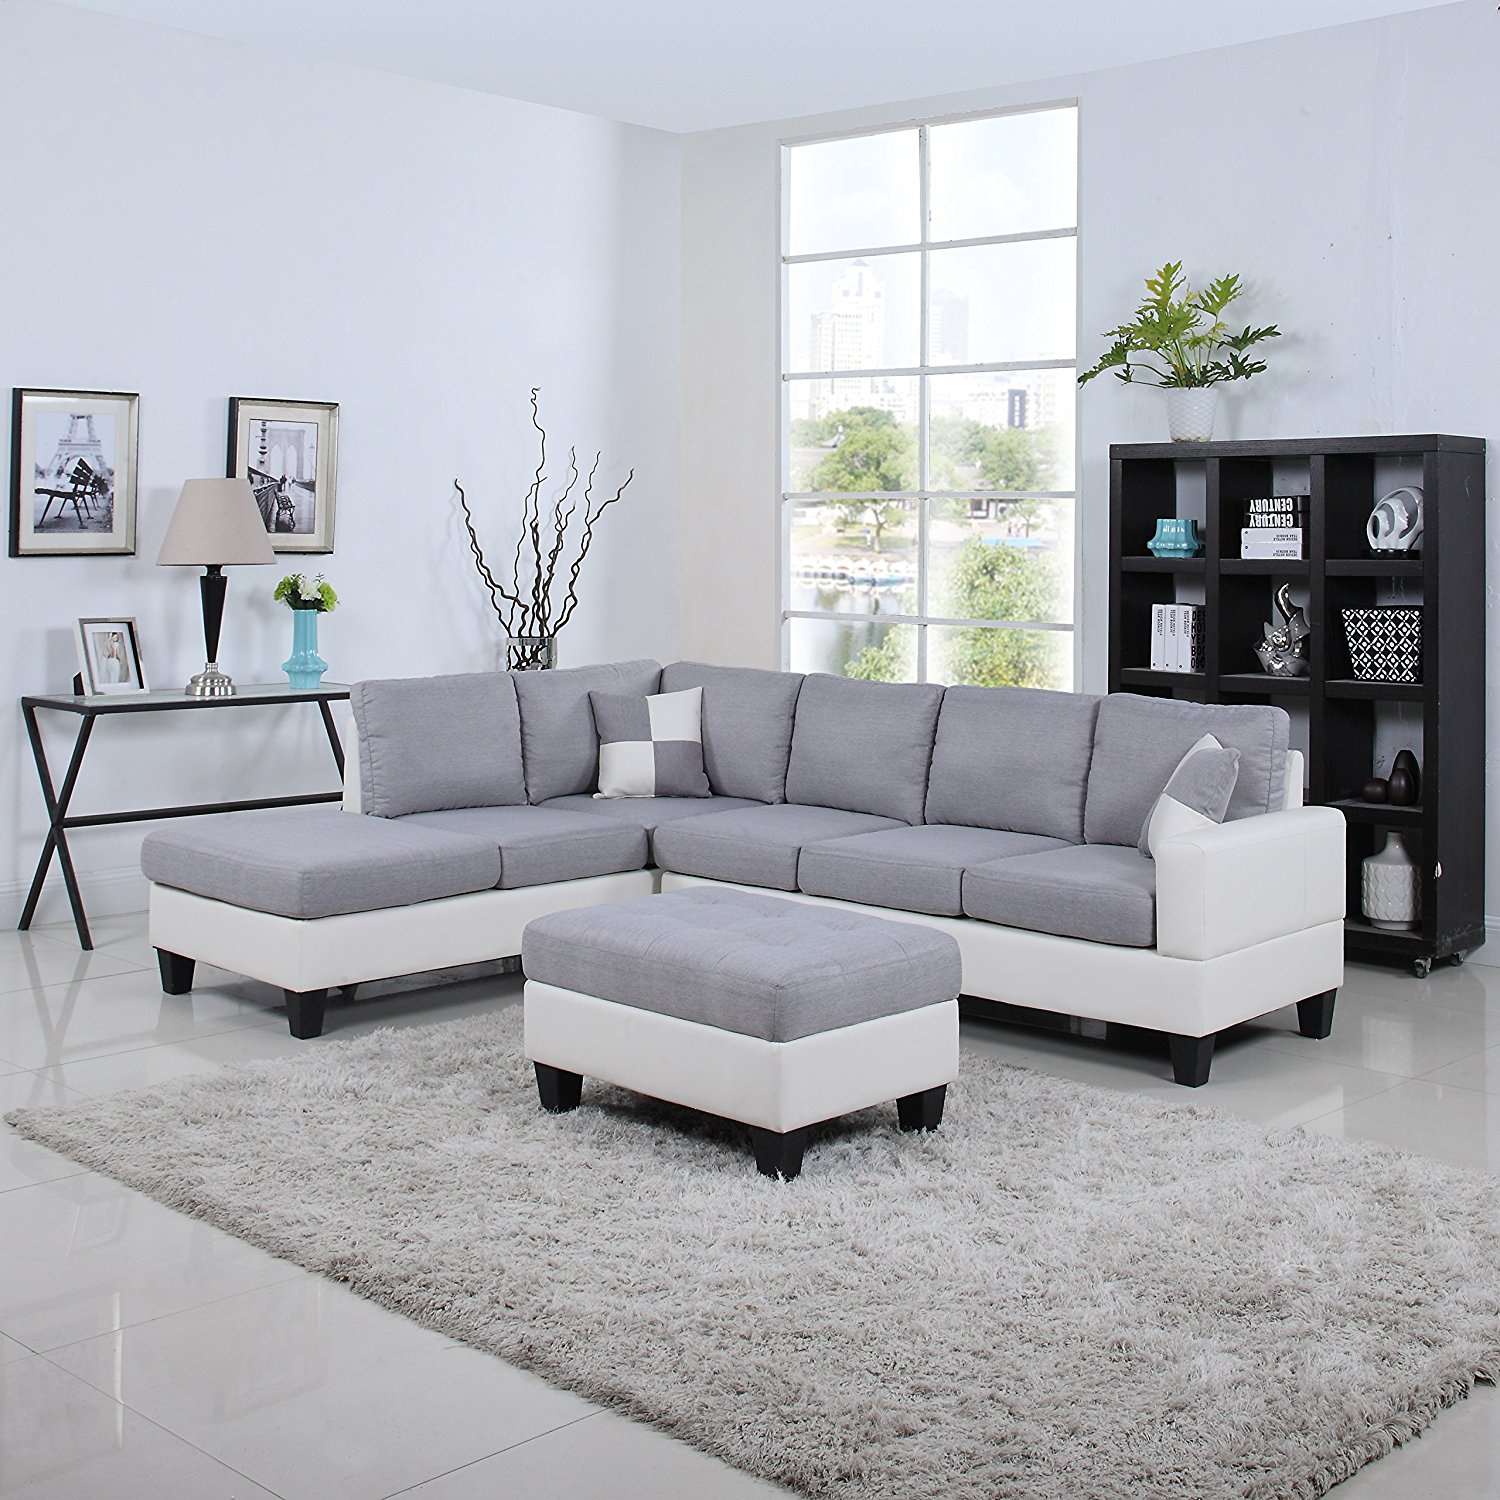 Classic Two Tone Large Linen Fabric and Bonded Leather Living Room Sectional Sofa (White / Light Grey)